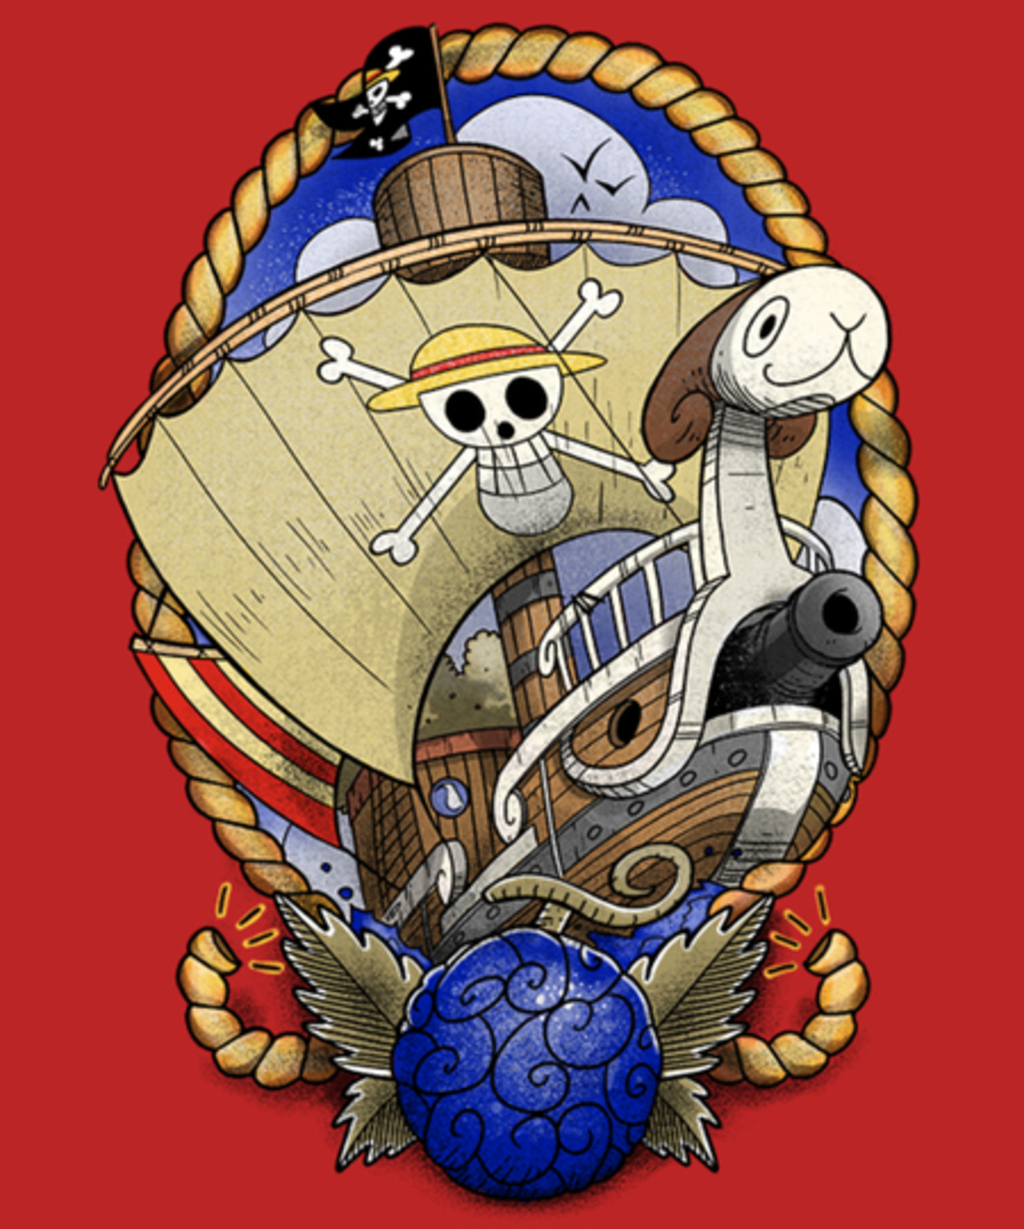 Qwertee: Old School's Sailing ship